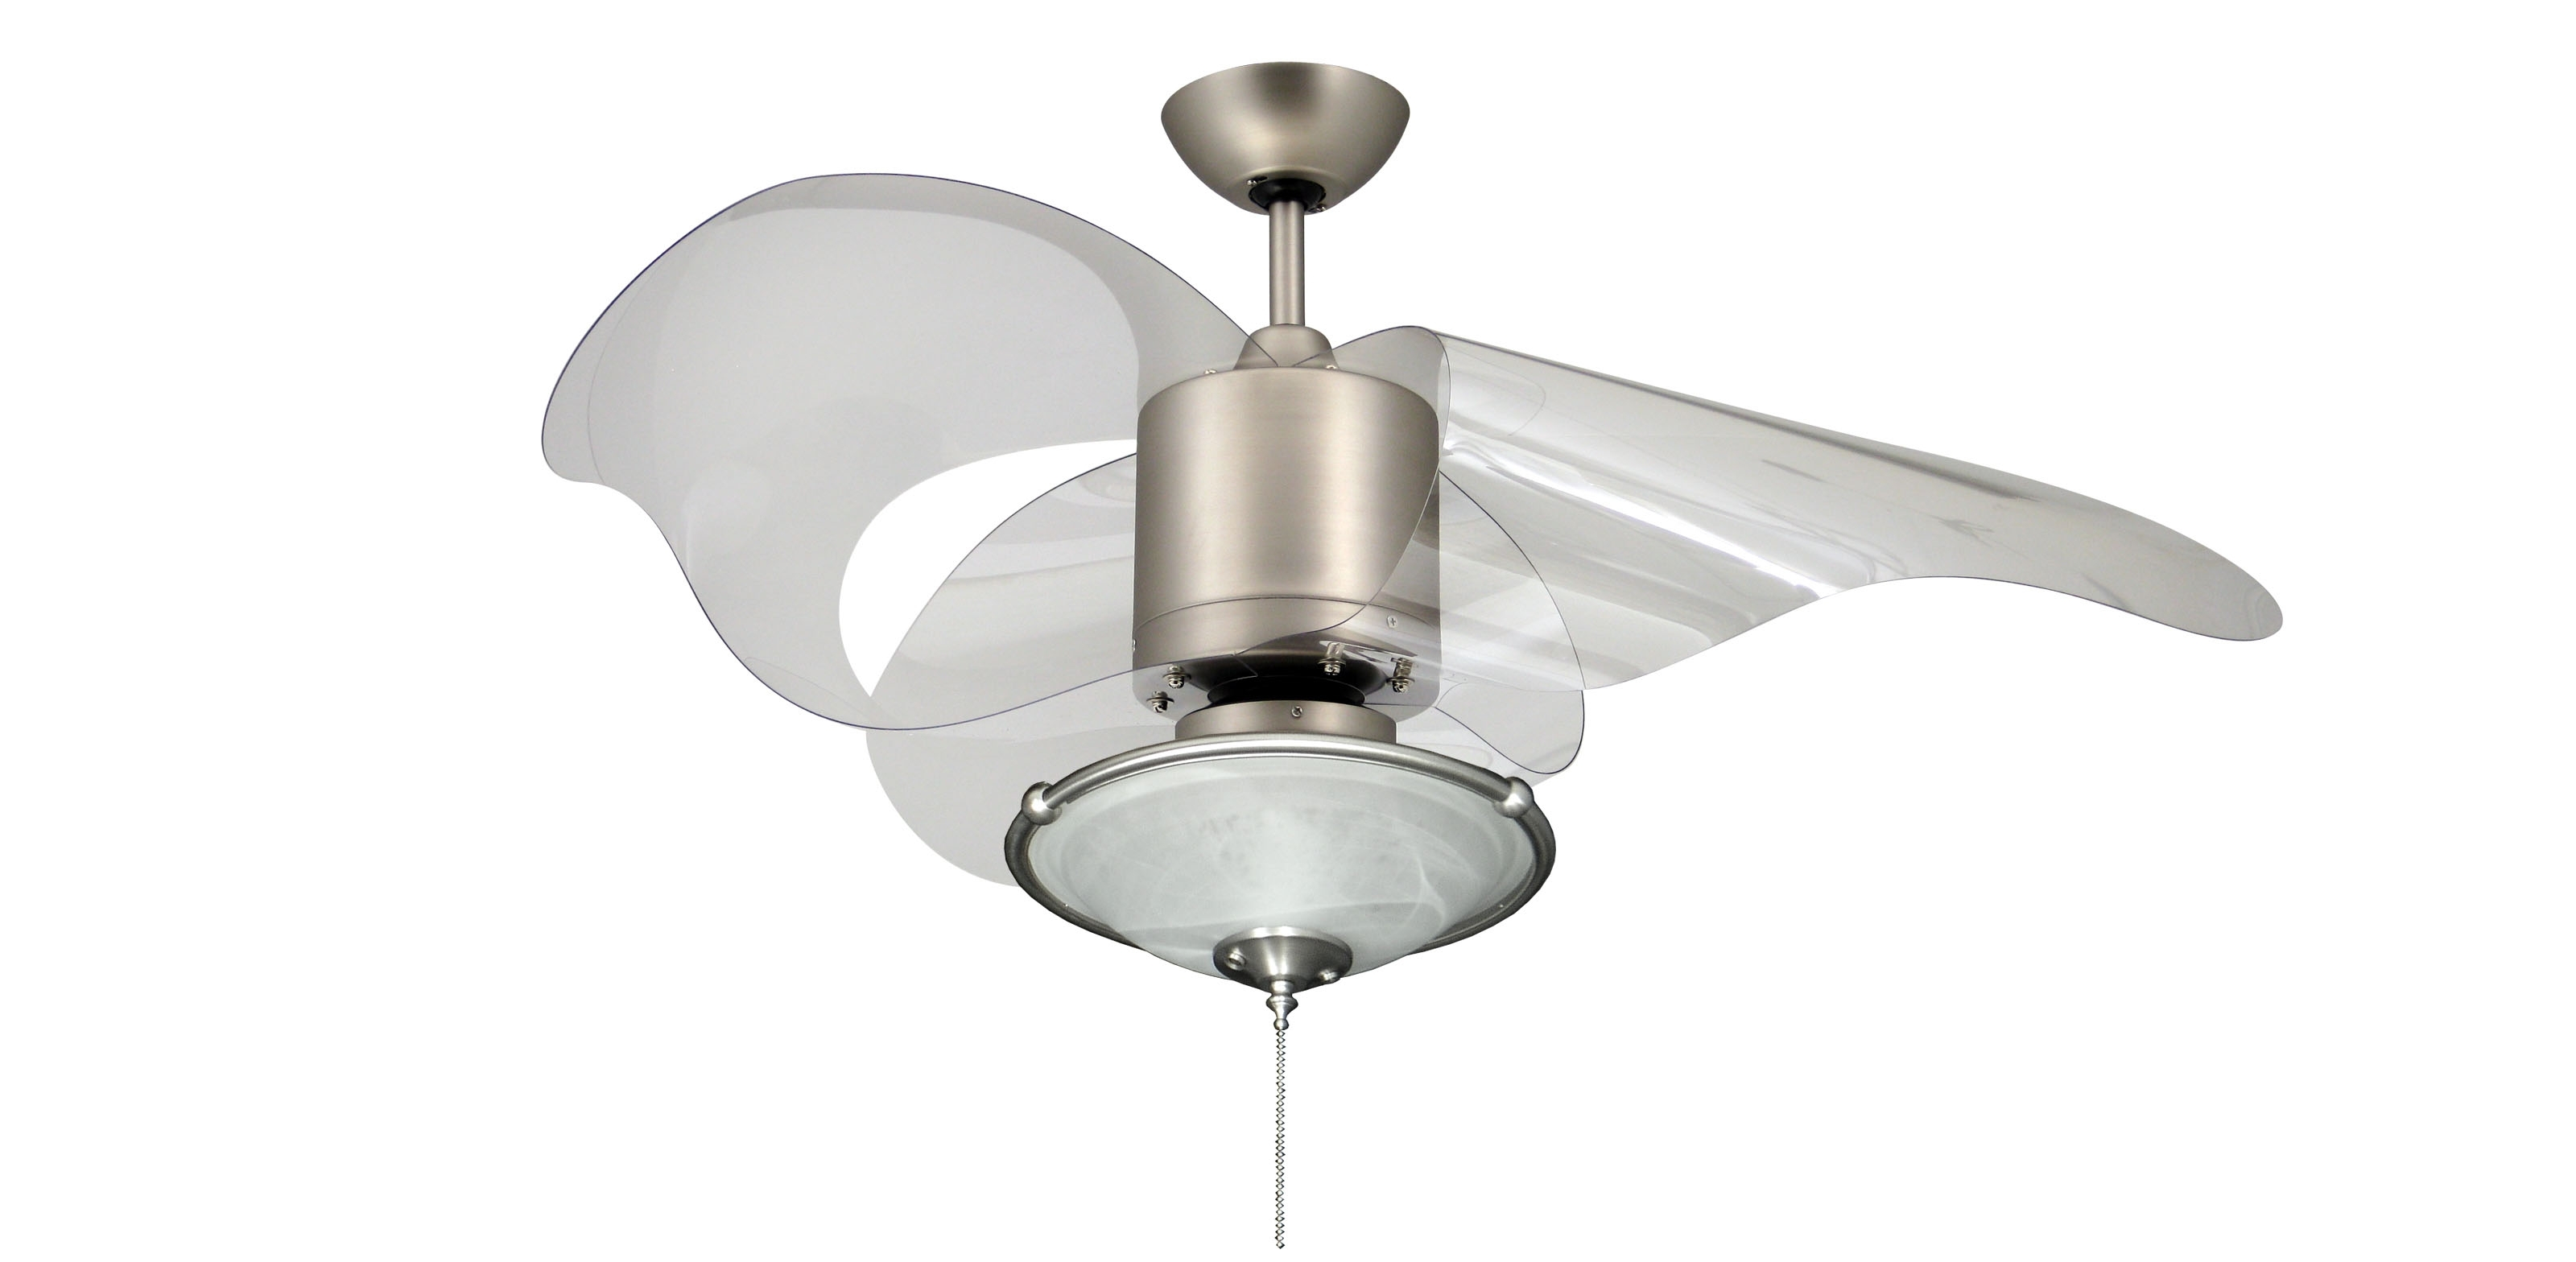 Popular Stainless Steel Outdoor Ceiling Fans With Light In Contemporary Ceiling Fans With Light (View 10 of 20)